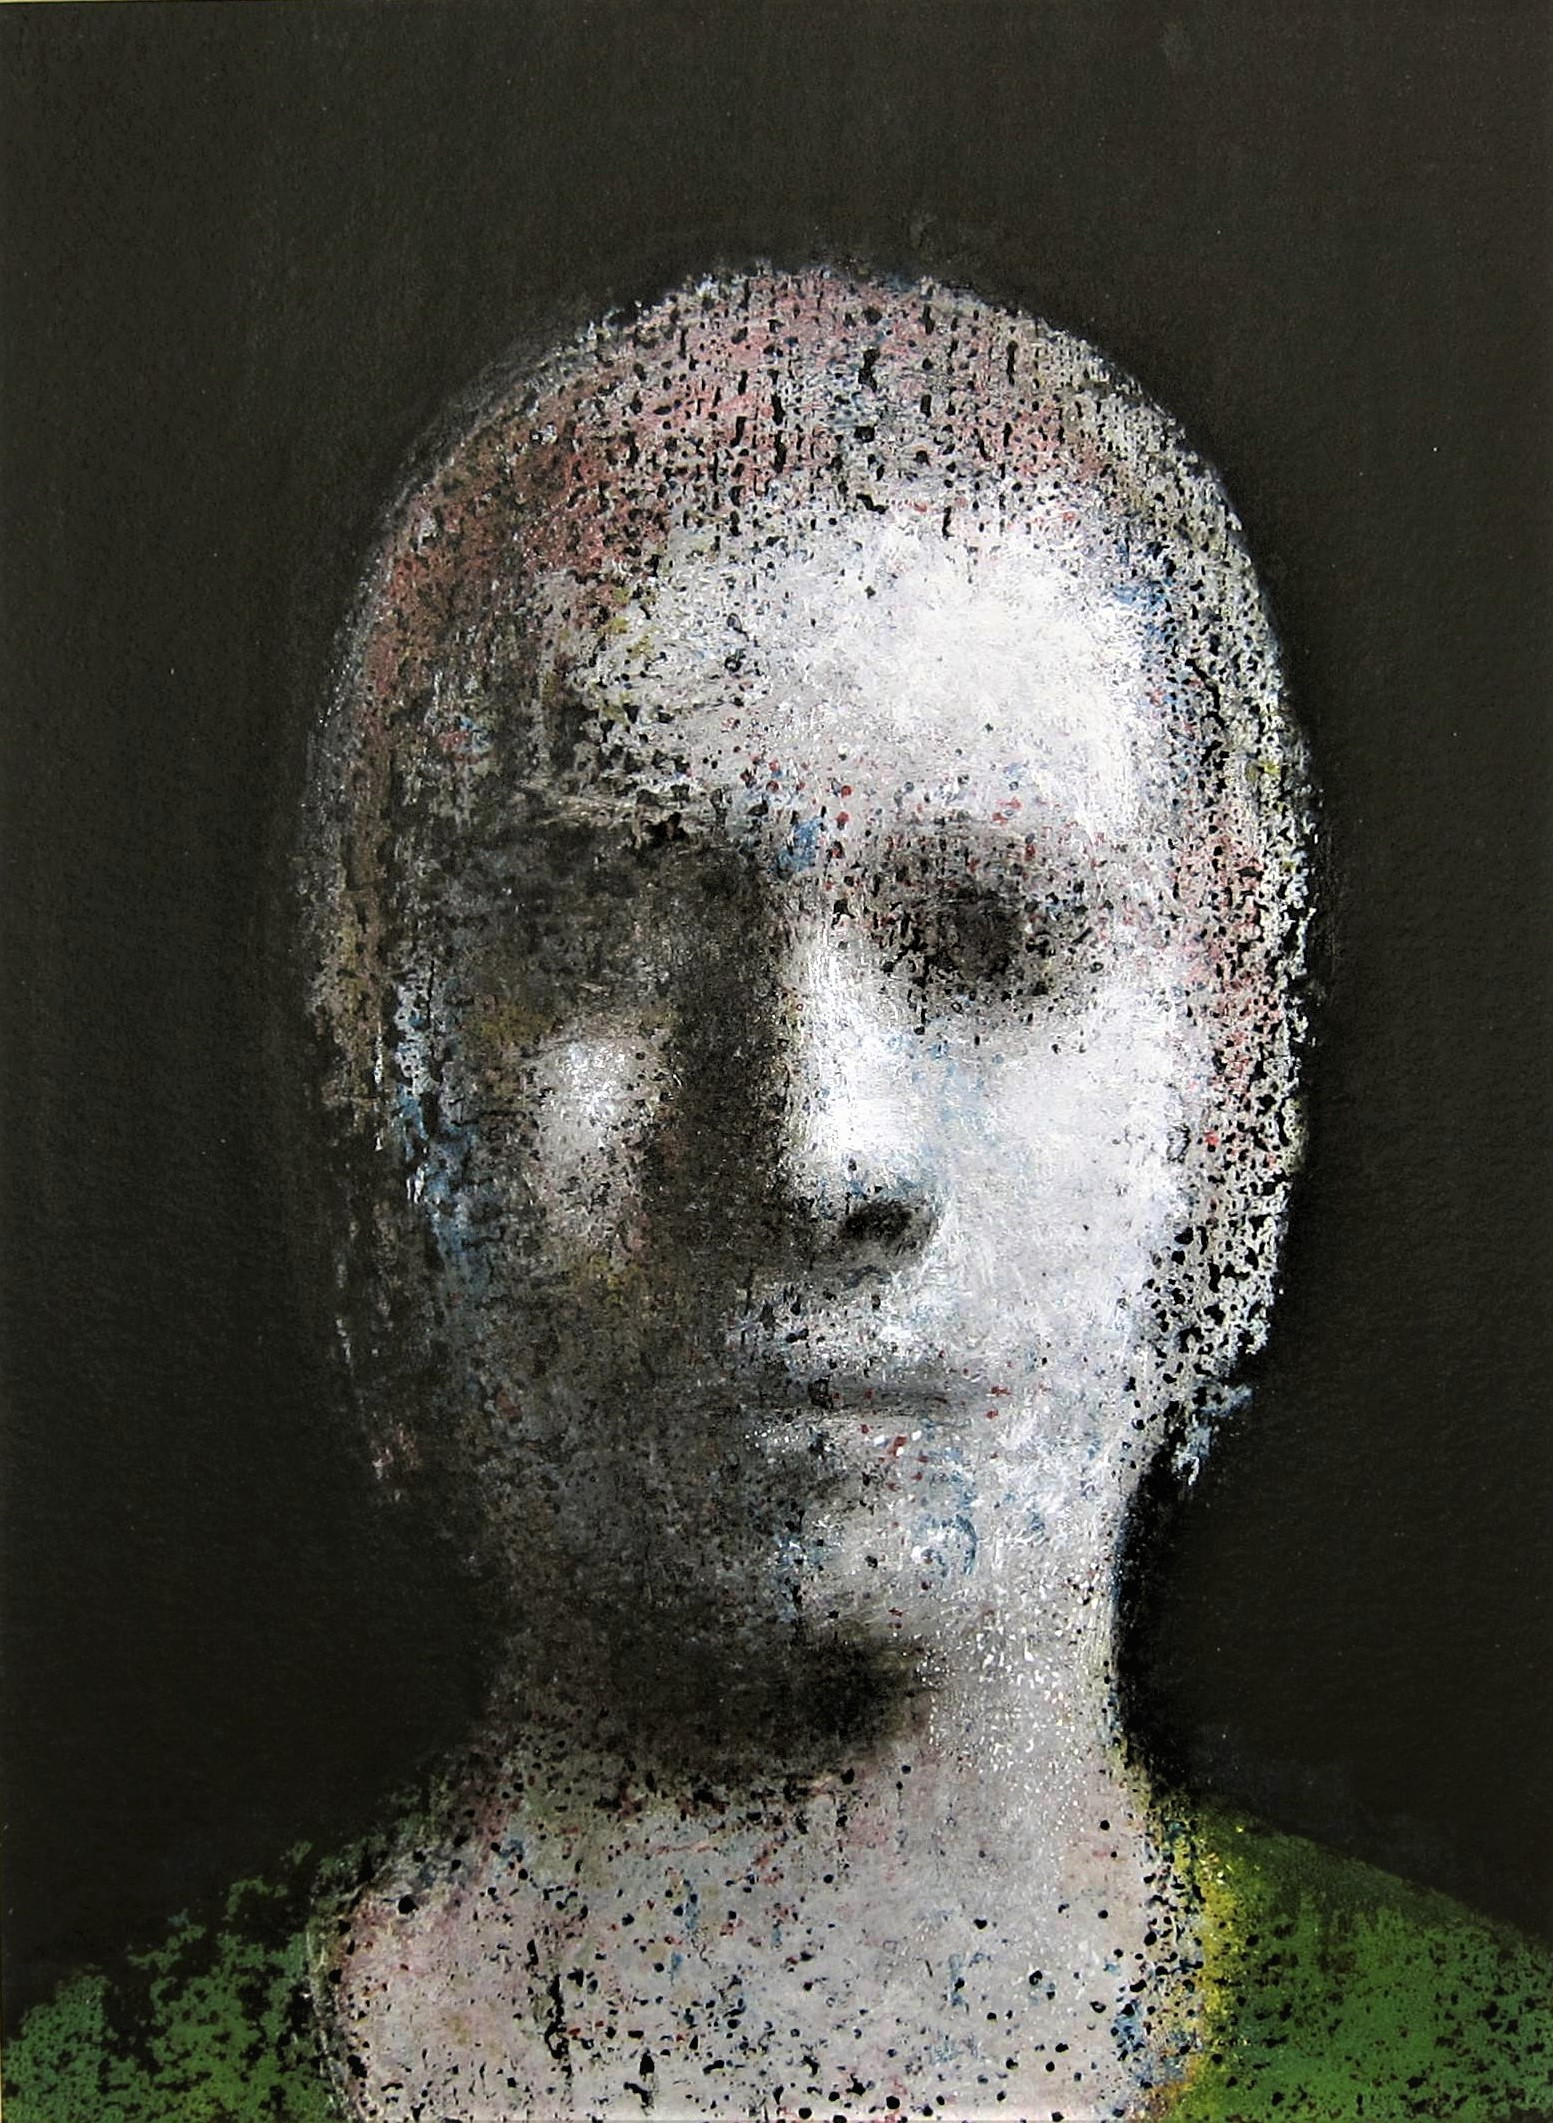 ROBERT CLATWORTHY R.A. [1928-2015]. Head, 1999; acrylic on card; signed. 35 x 27 cm image size -